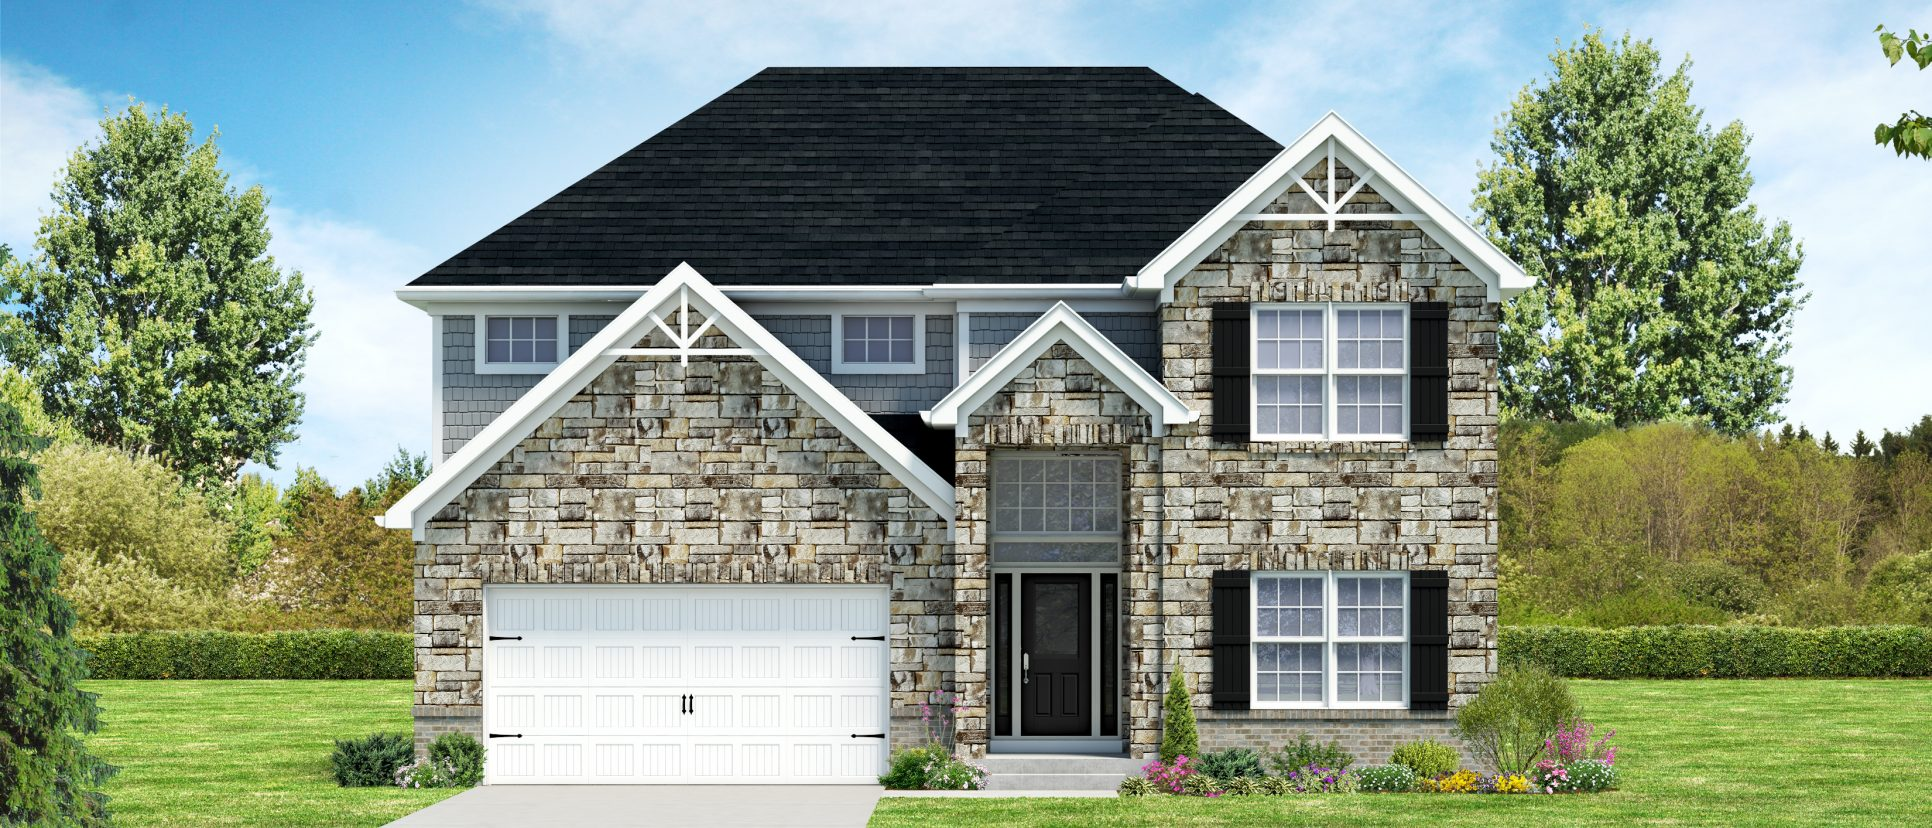 Custom exterior rendering of the Venice. A standard plan by Design Homes and Development.